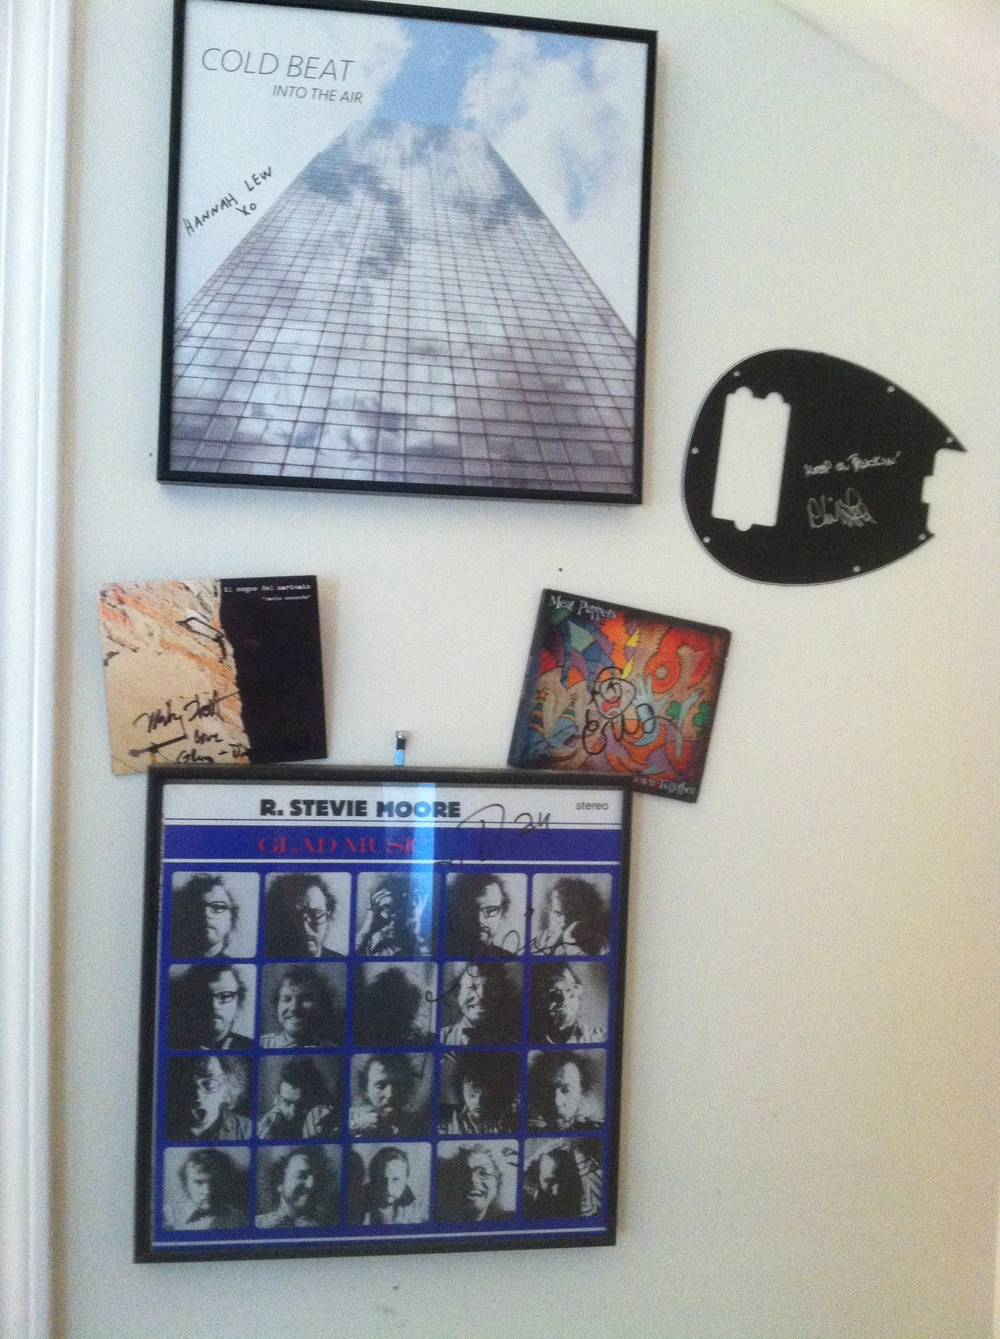 My bassists shrine.It's coming about completely unplanned so far.#Mike Watt #Hannah Lew #Phil Lesh #R. Stevie Moore #Cris Kirkwod